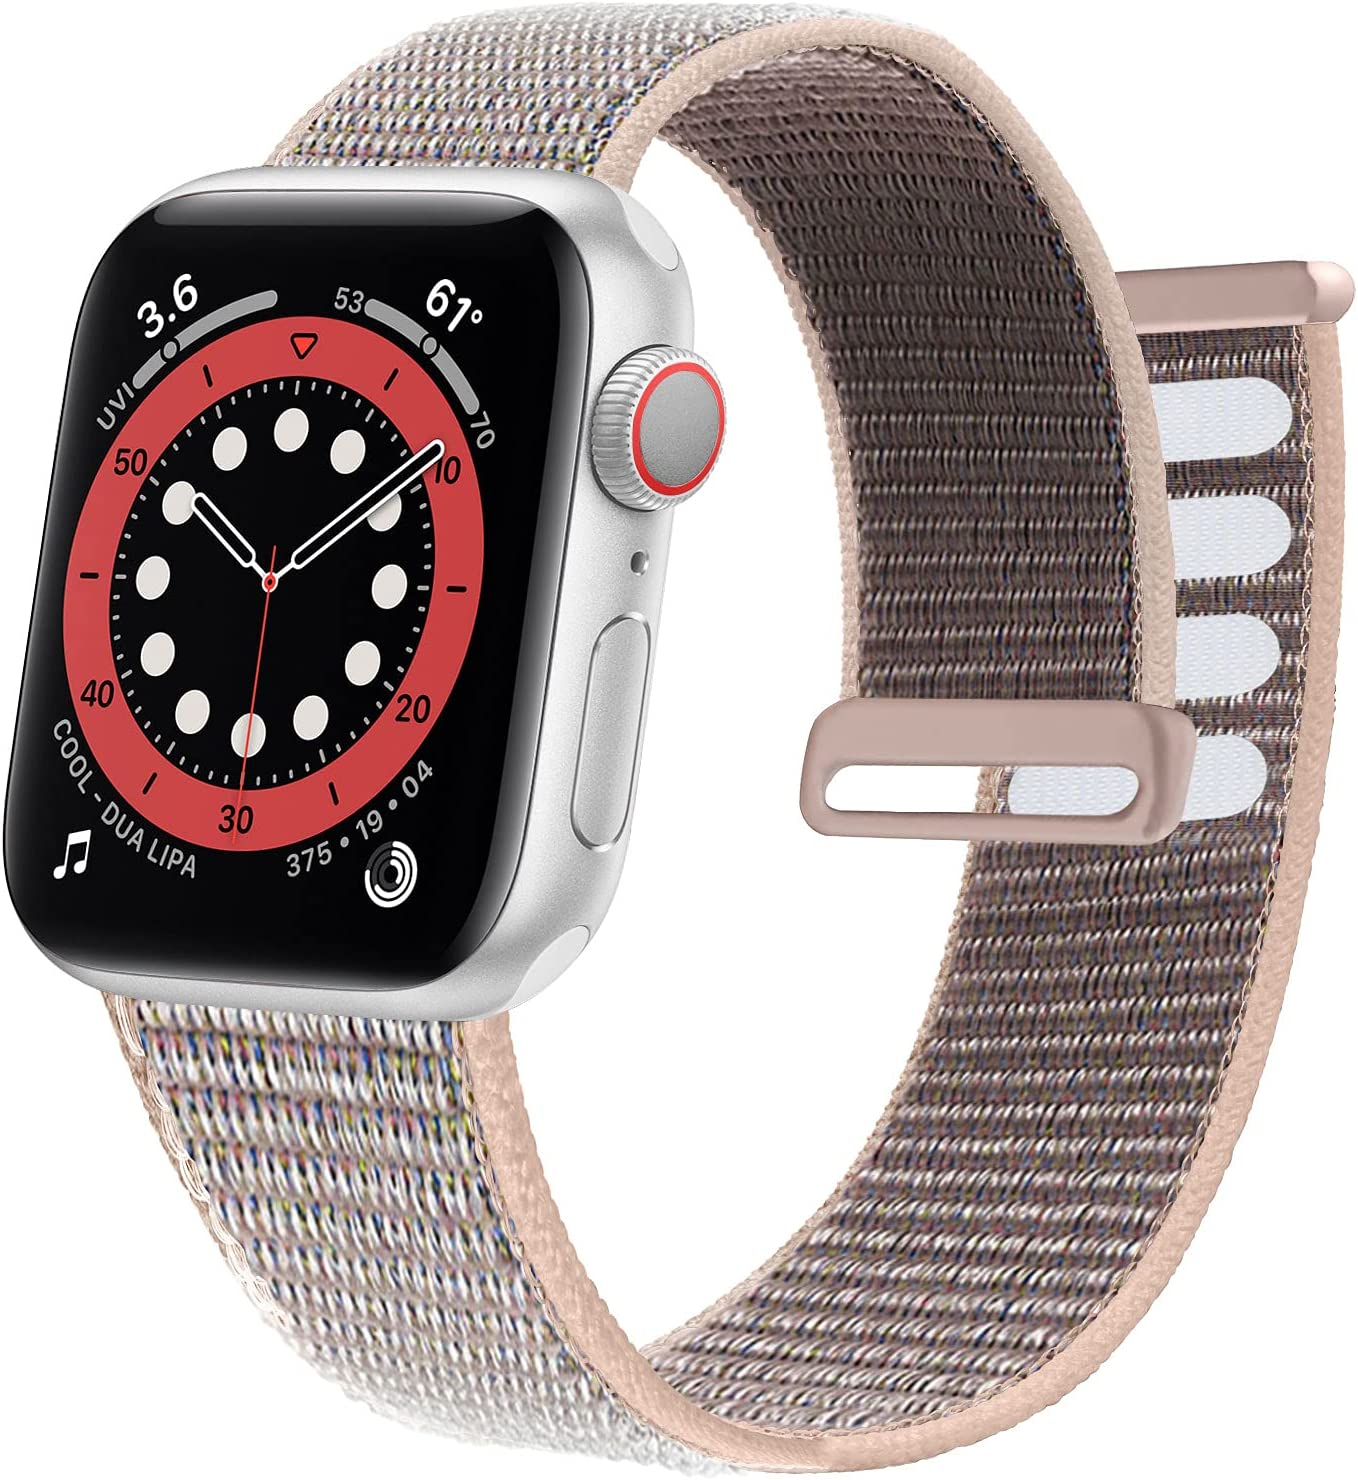 Ycysh Velcro Nylon Band Compatible with Apple Watch Band 38mm 40mm 42mm 44mm, Men Women Adjustable Sport Band Compatible for iWatch Series 6 5 4 3 2 1 SE